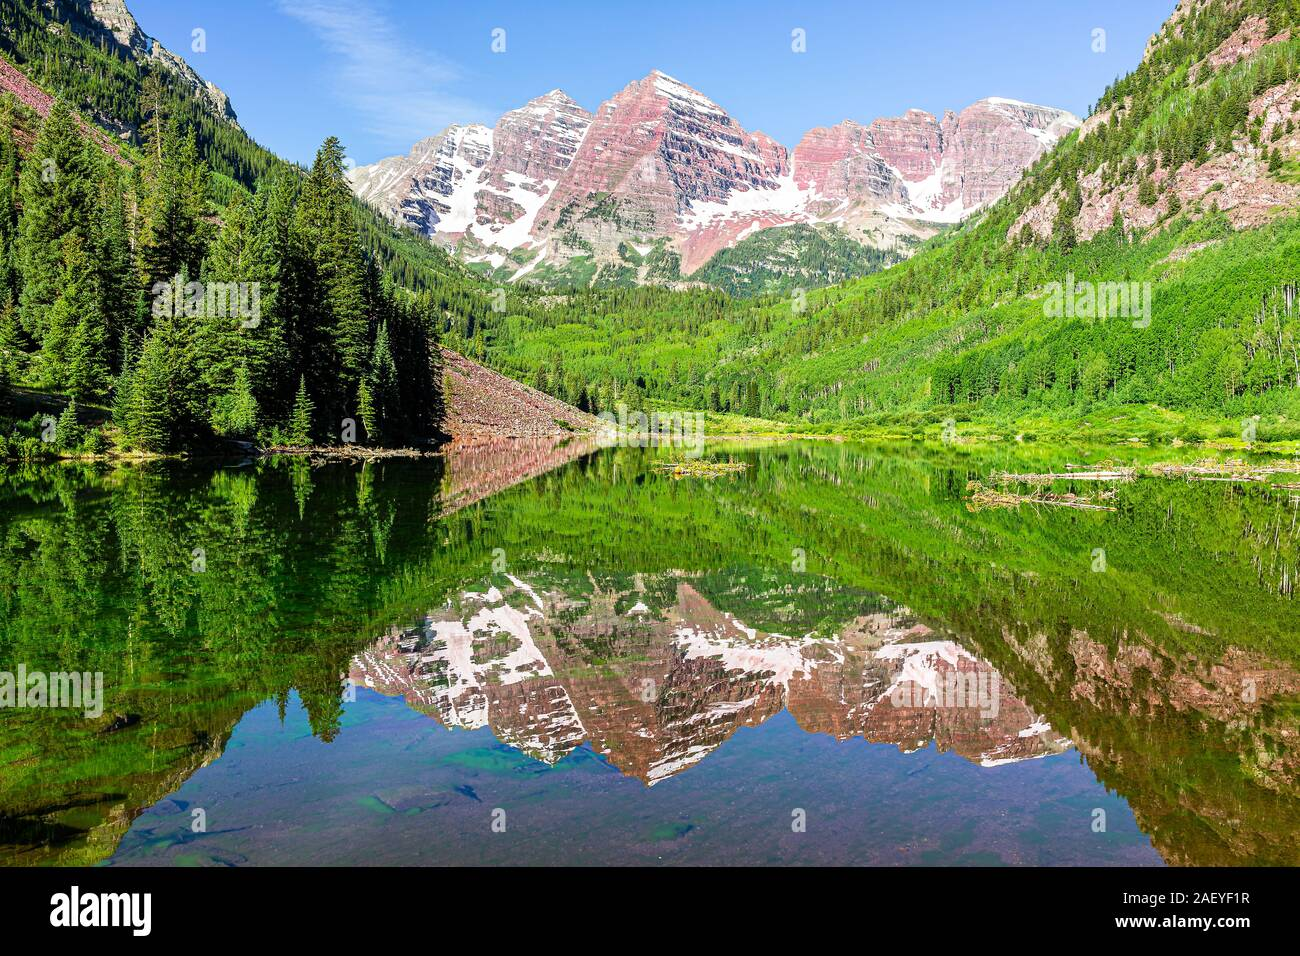 Maroon Bells Lake Mirror Reflection During Day View In Aspen